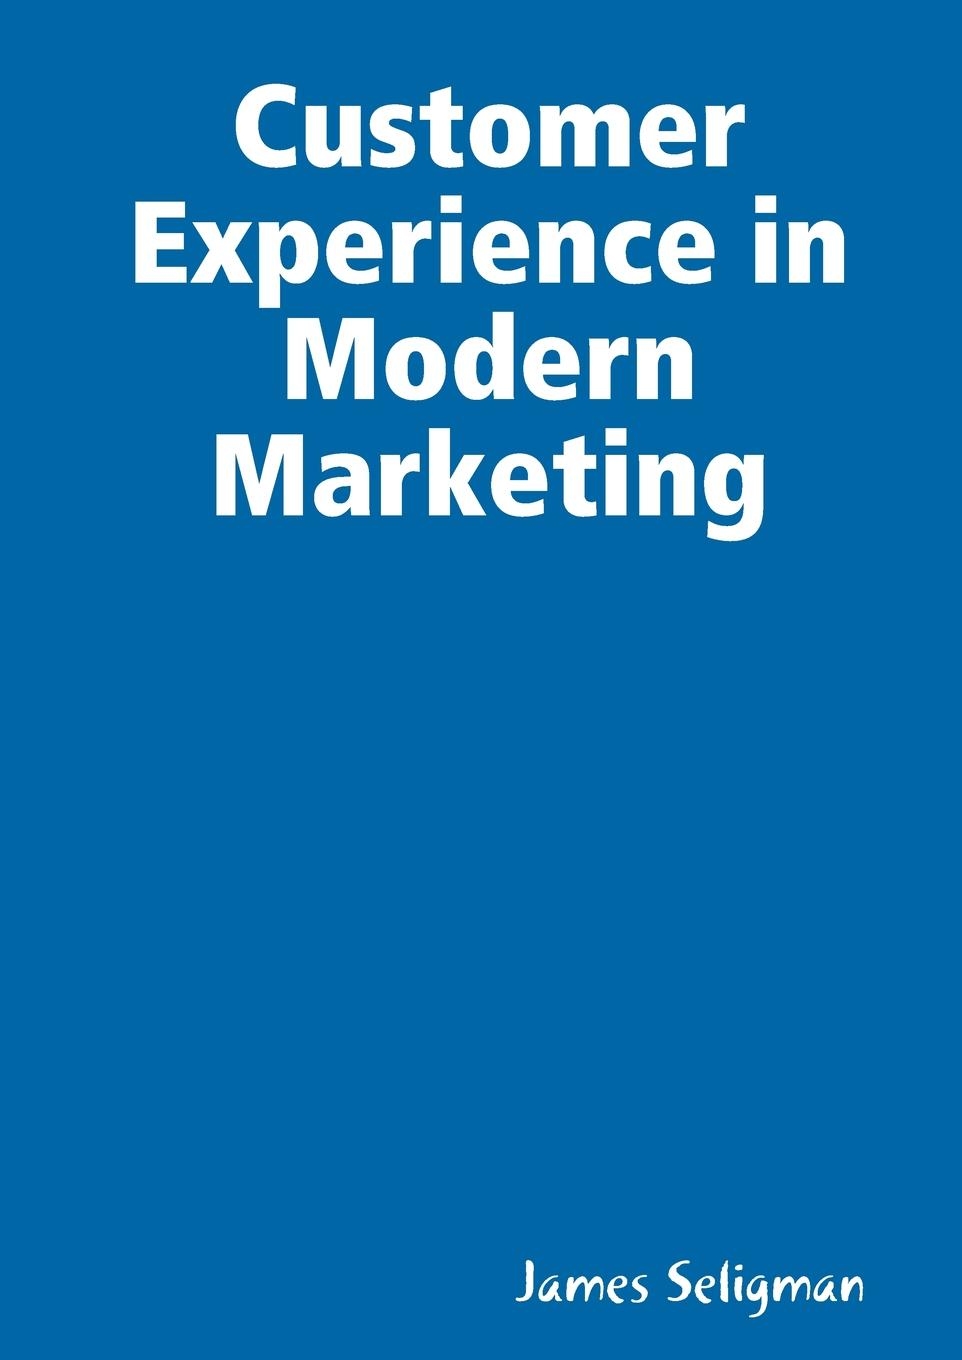 James Seligman Customer Experience in Modern Marketing andrew frawley igniting customer connections fire up your company s growth by multiplying customer experience and engagement